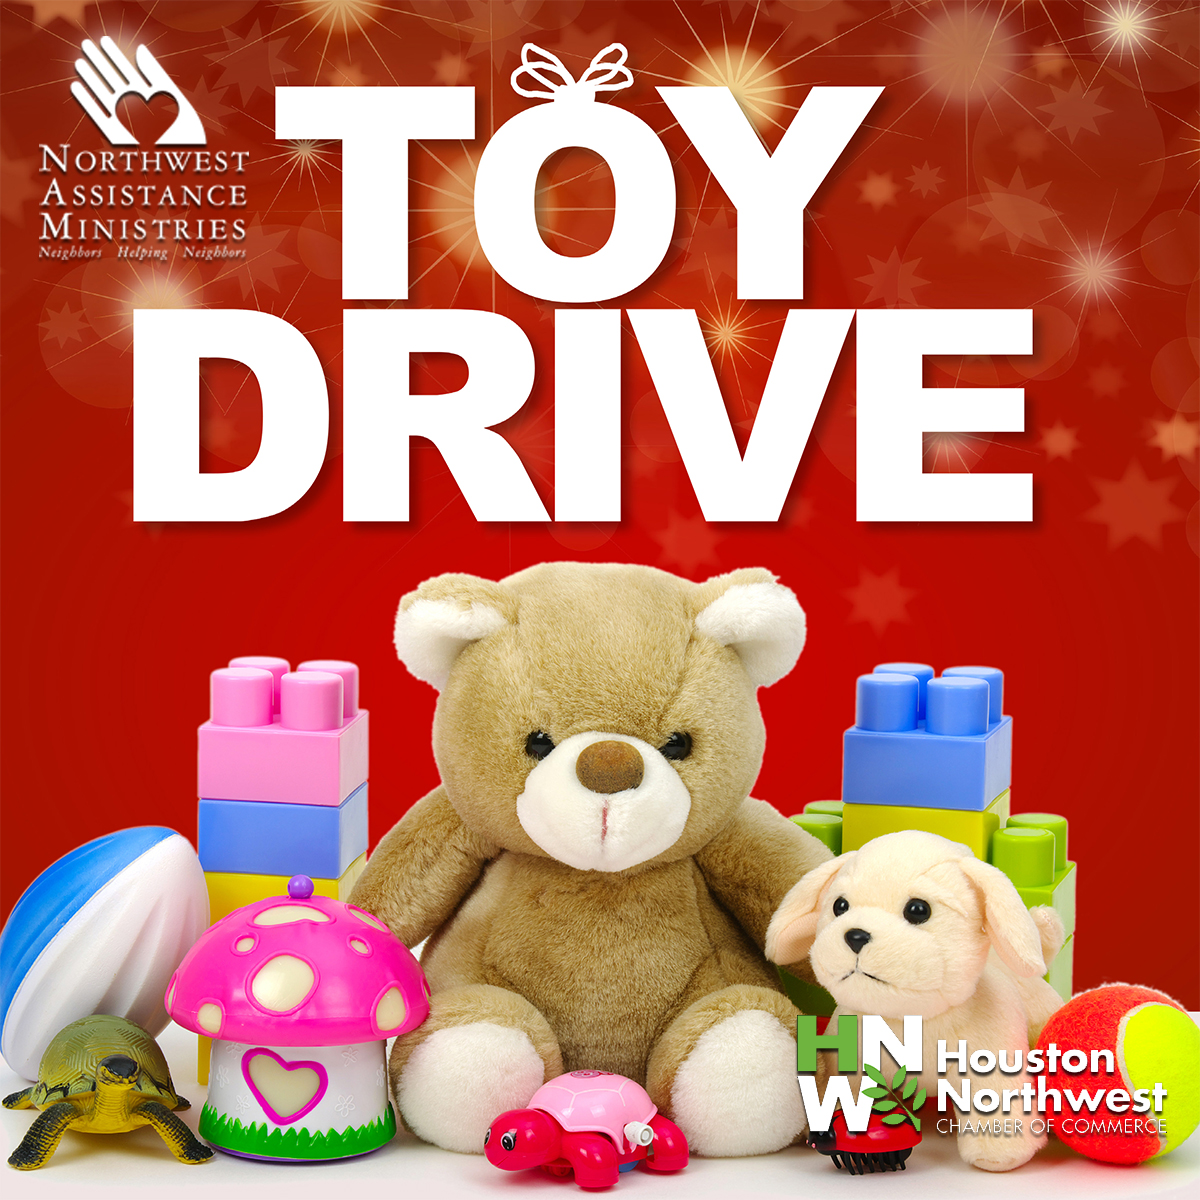 Bring a Toy to North by Northwest for NAM